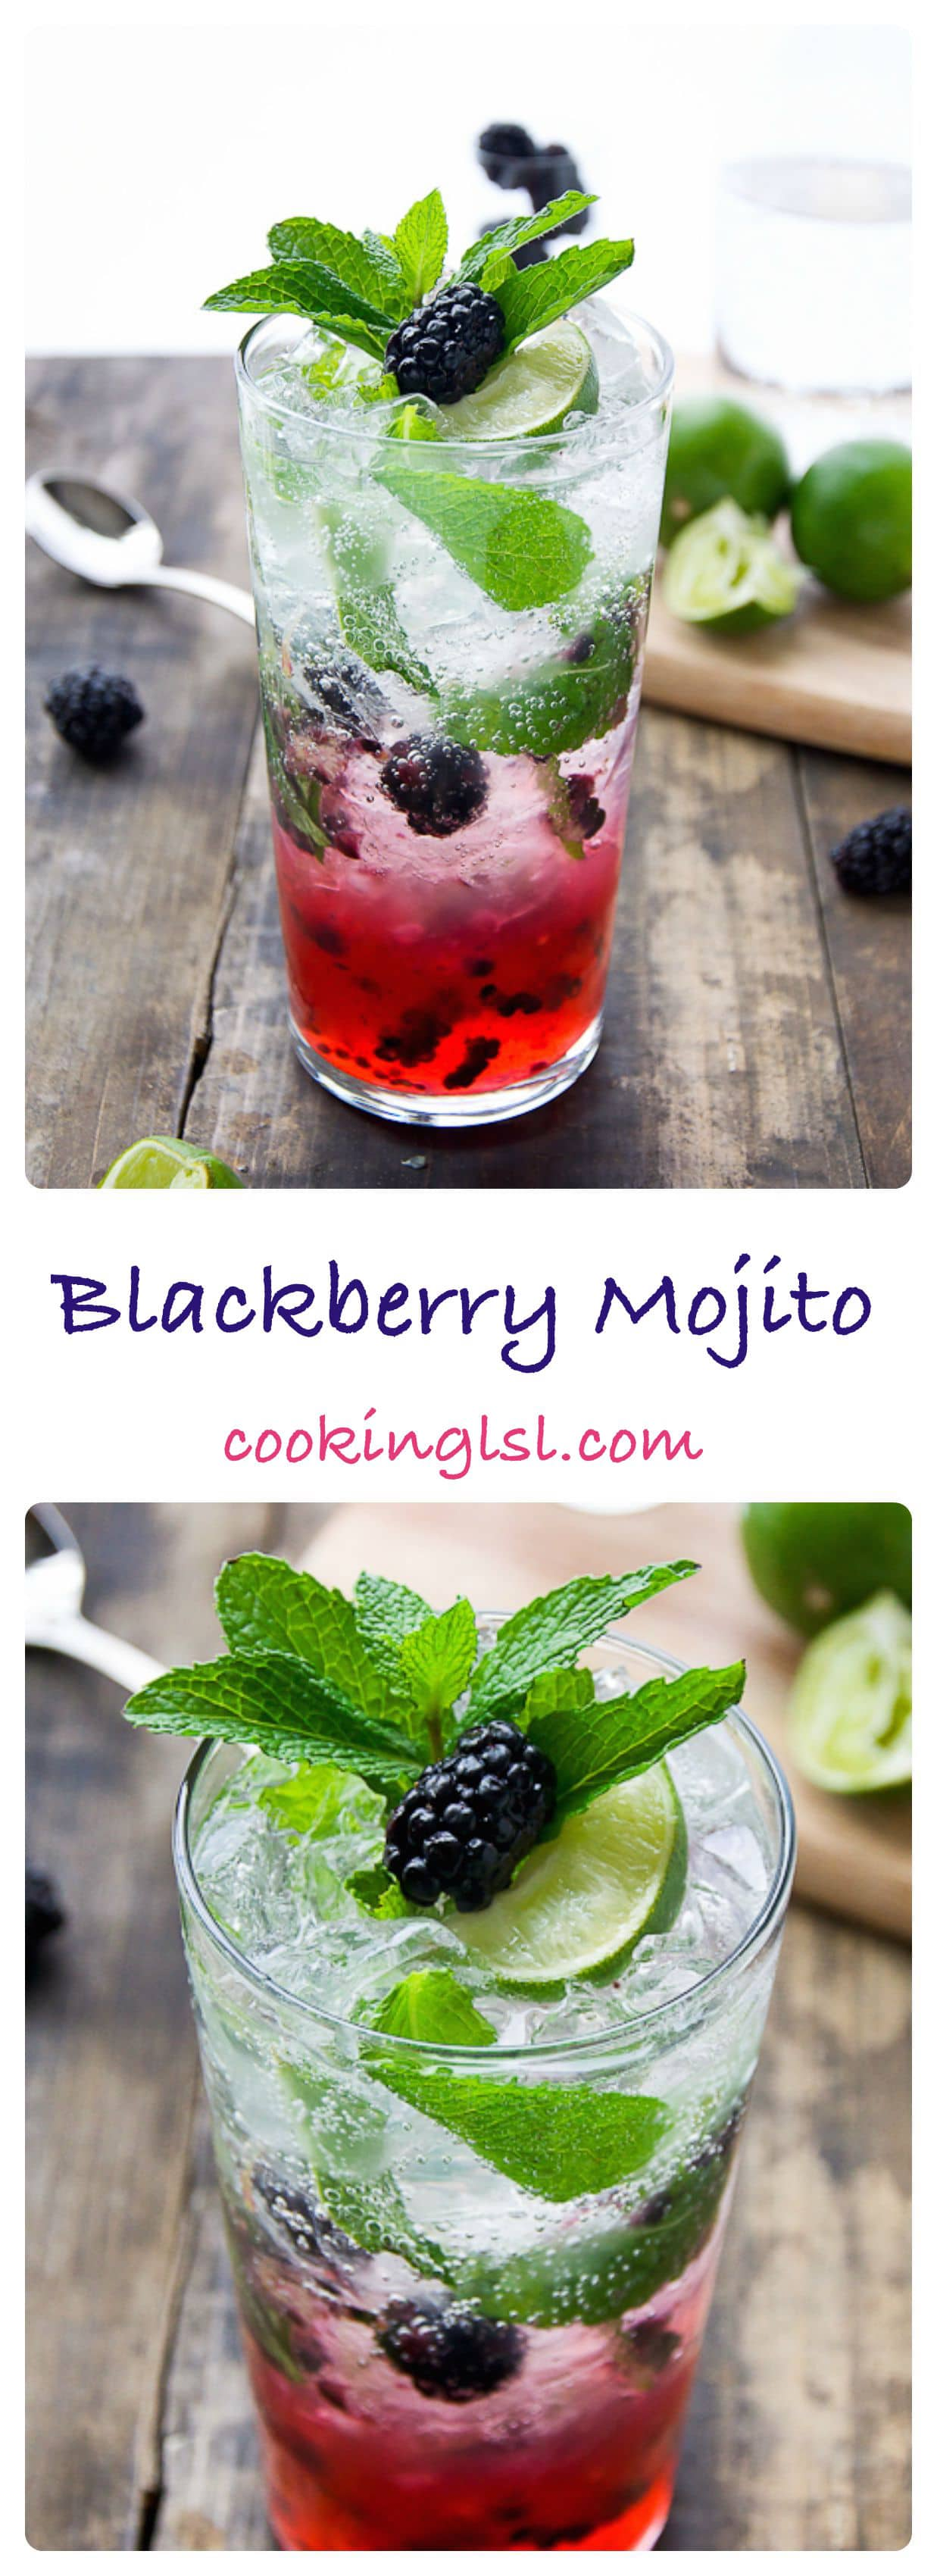 blackberry-mojito-cocktail-recipe-easy